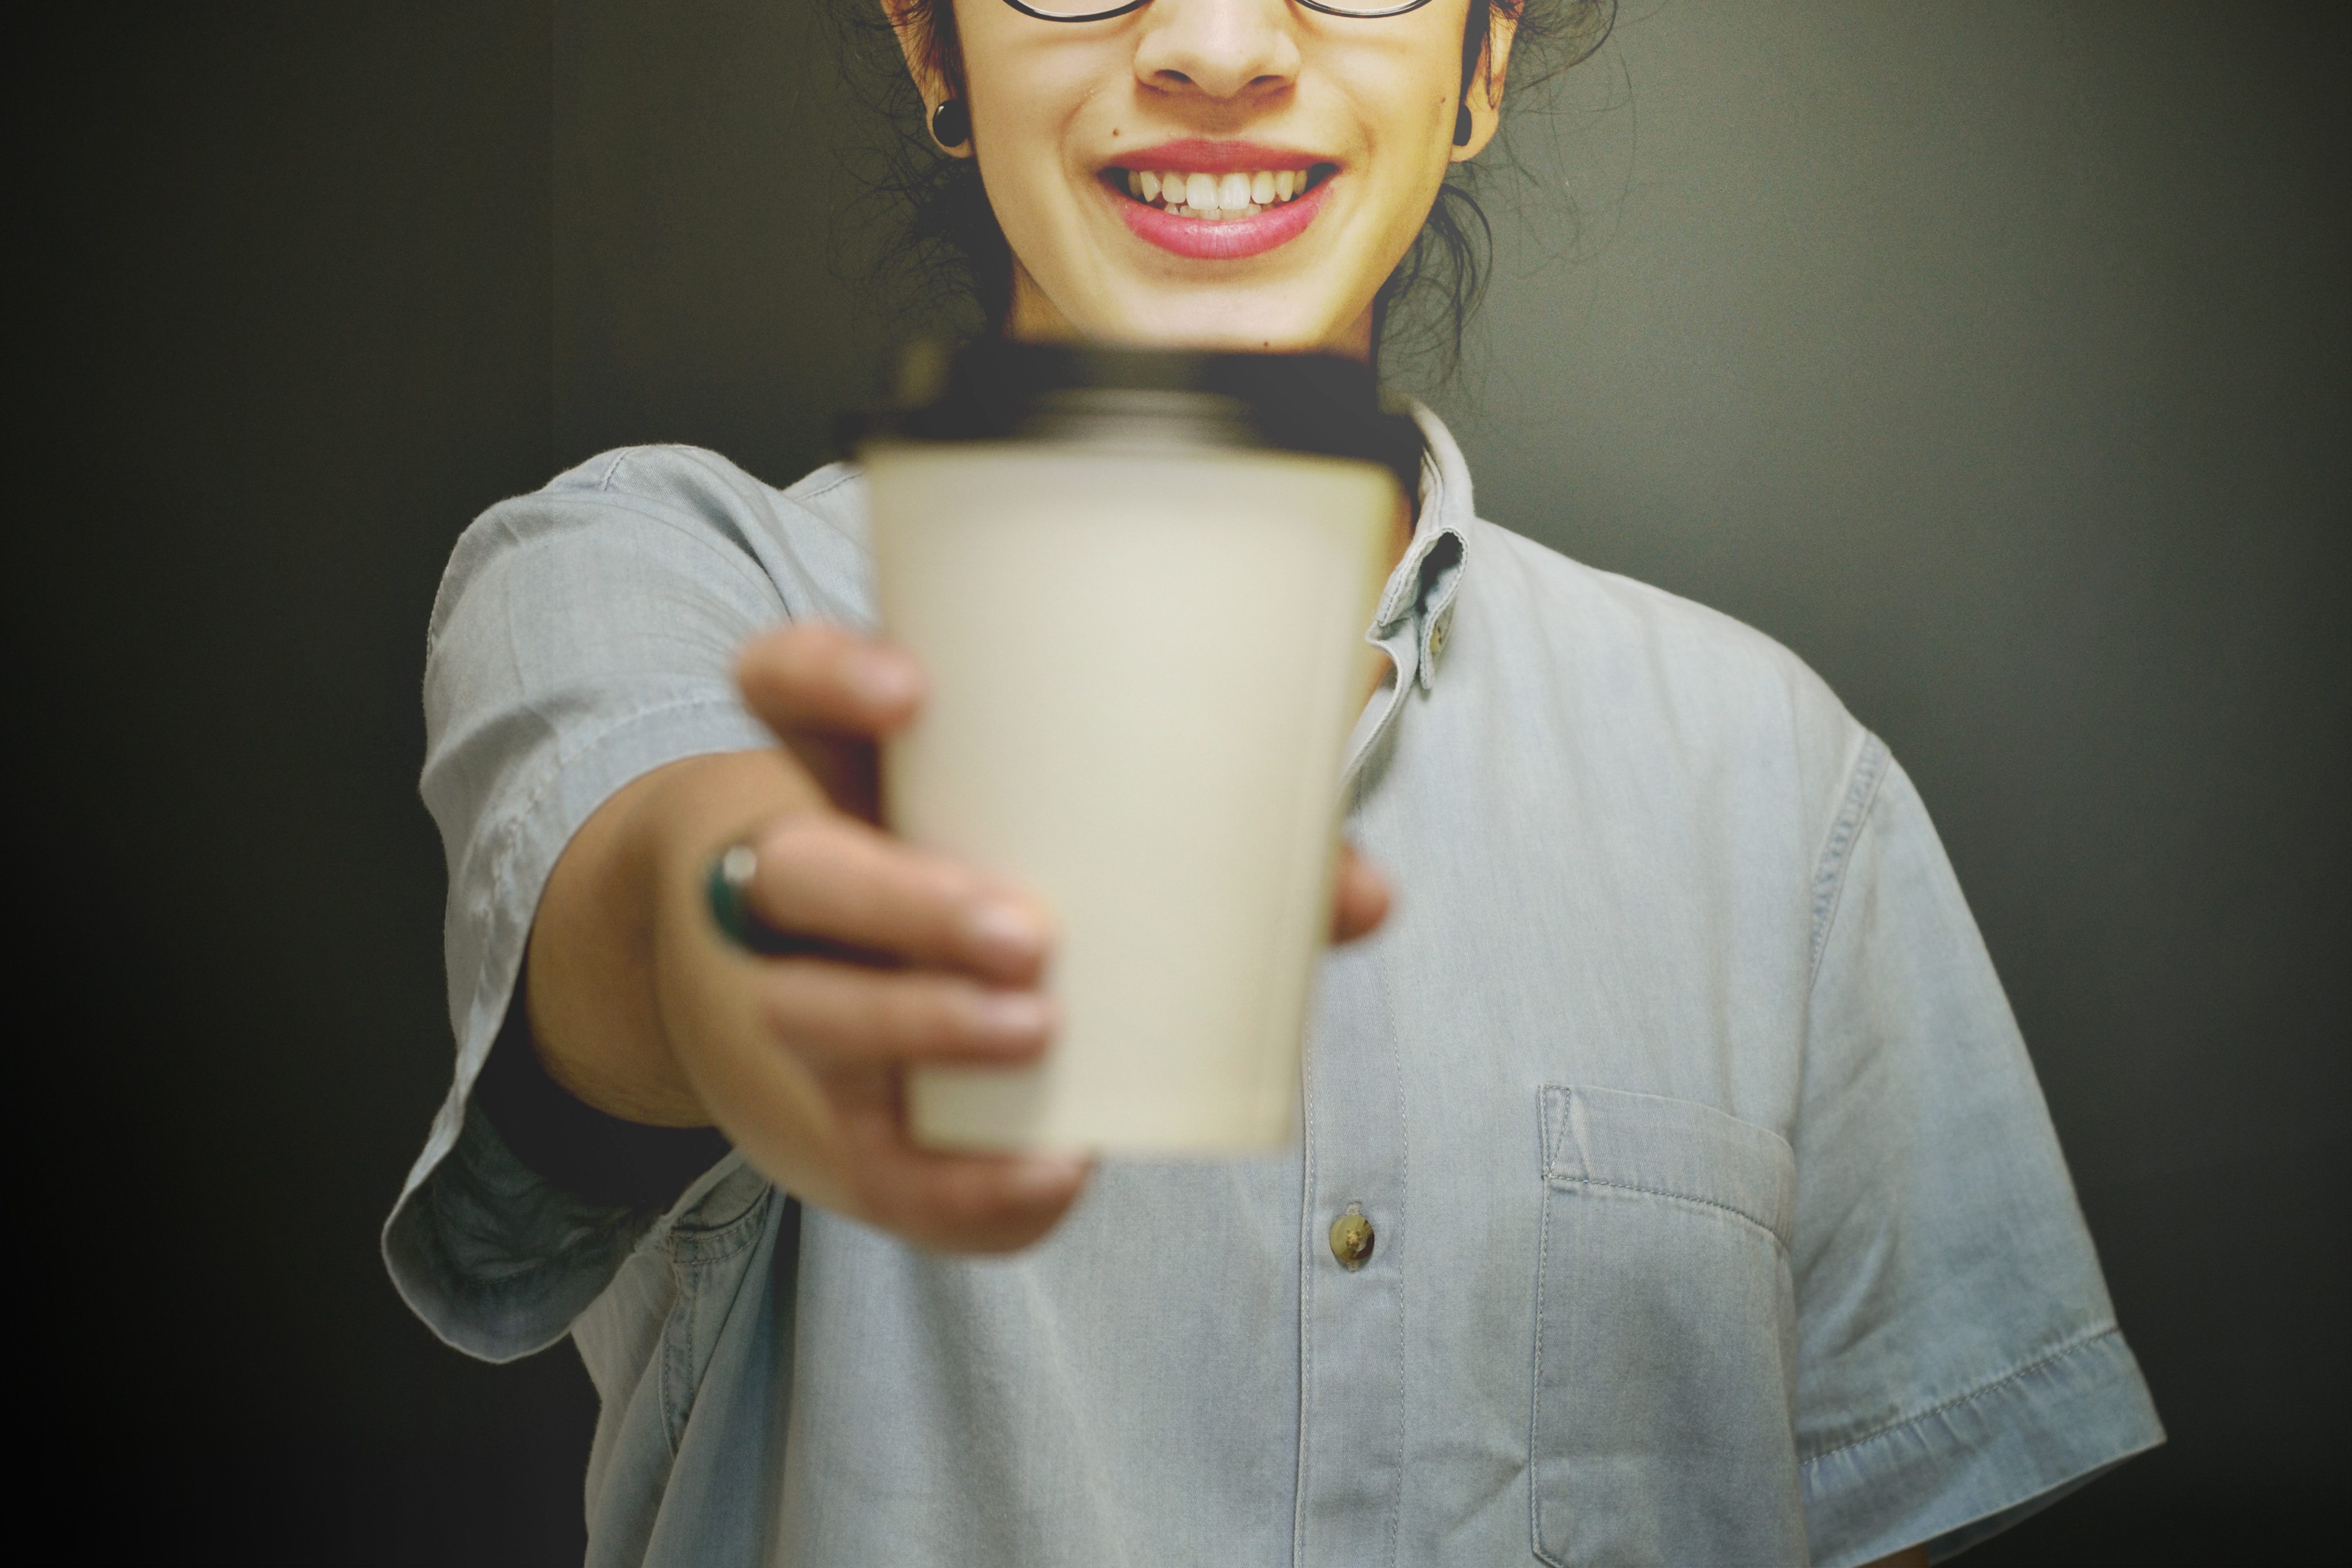 A smiling woman holding out a coffee cup